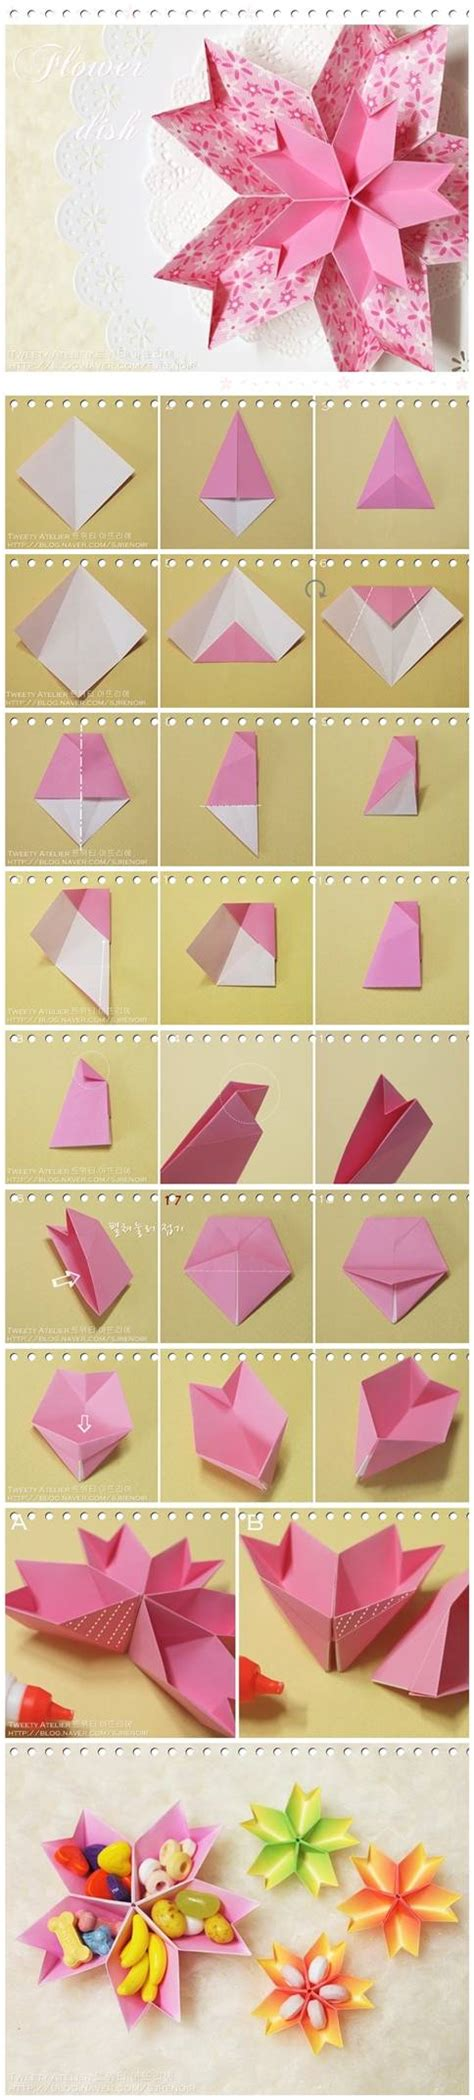 steps to make paper crafts how to make paper flower dish step by step diy tutorial